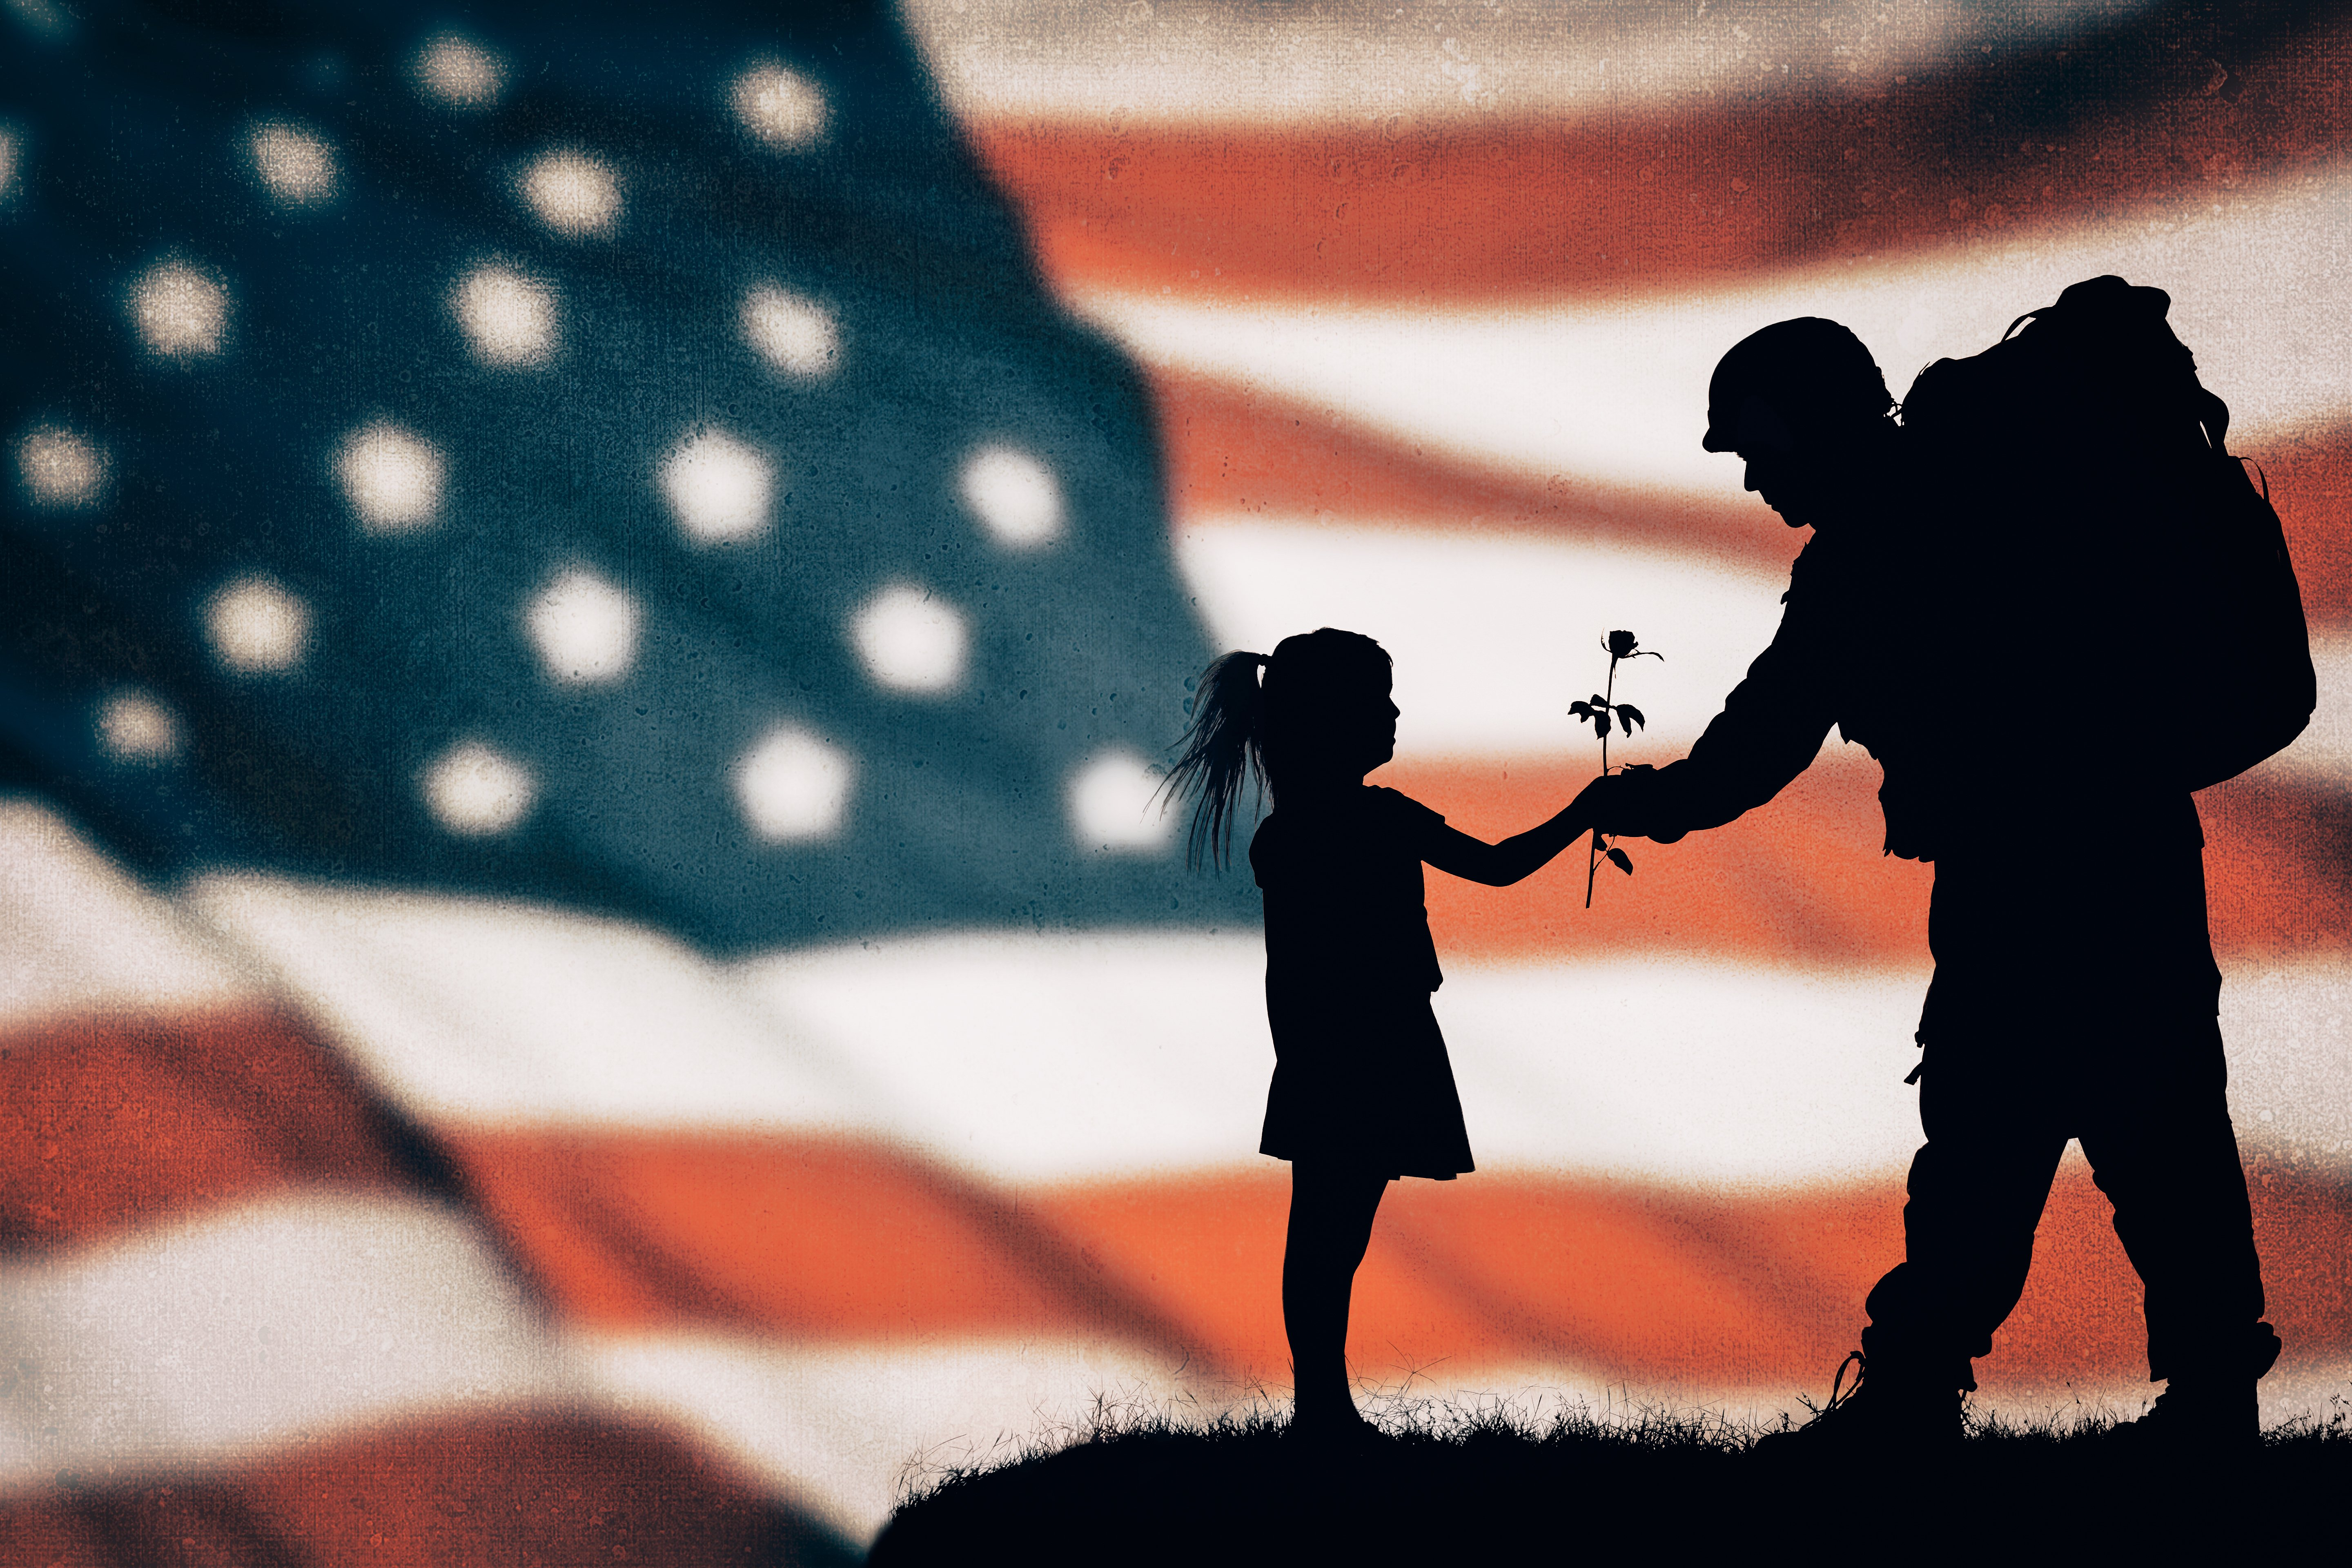 A little girl giving a rose to an American soldier | Photo: Shutterstock